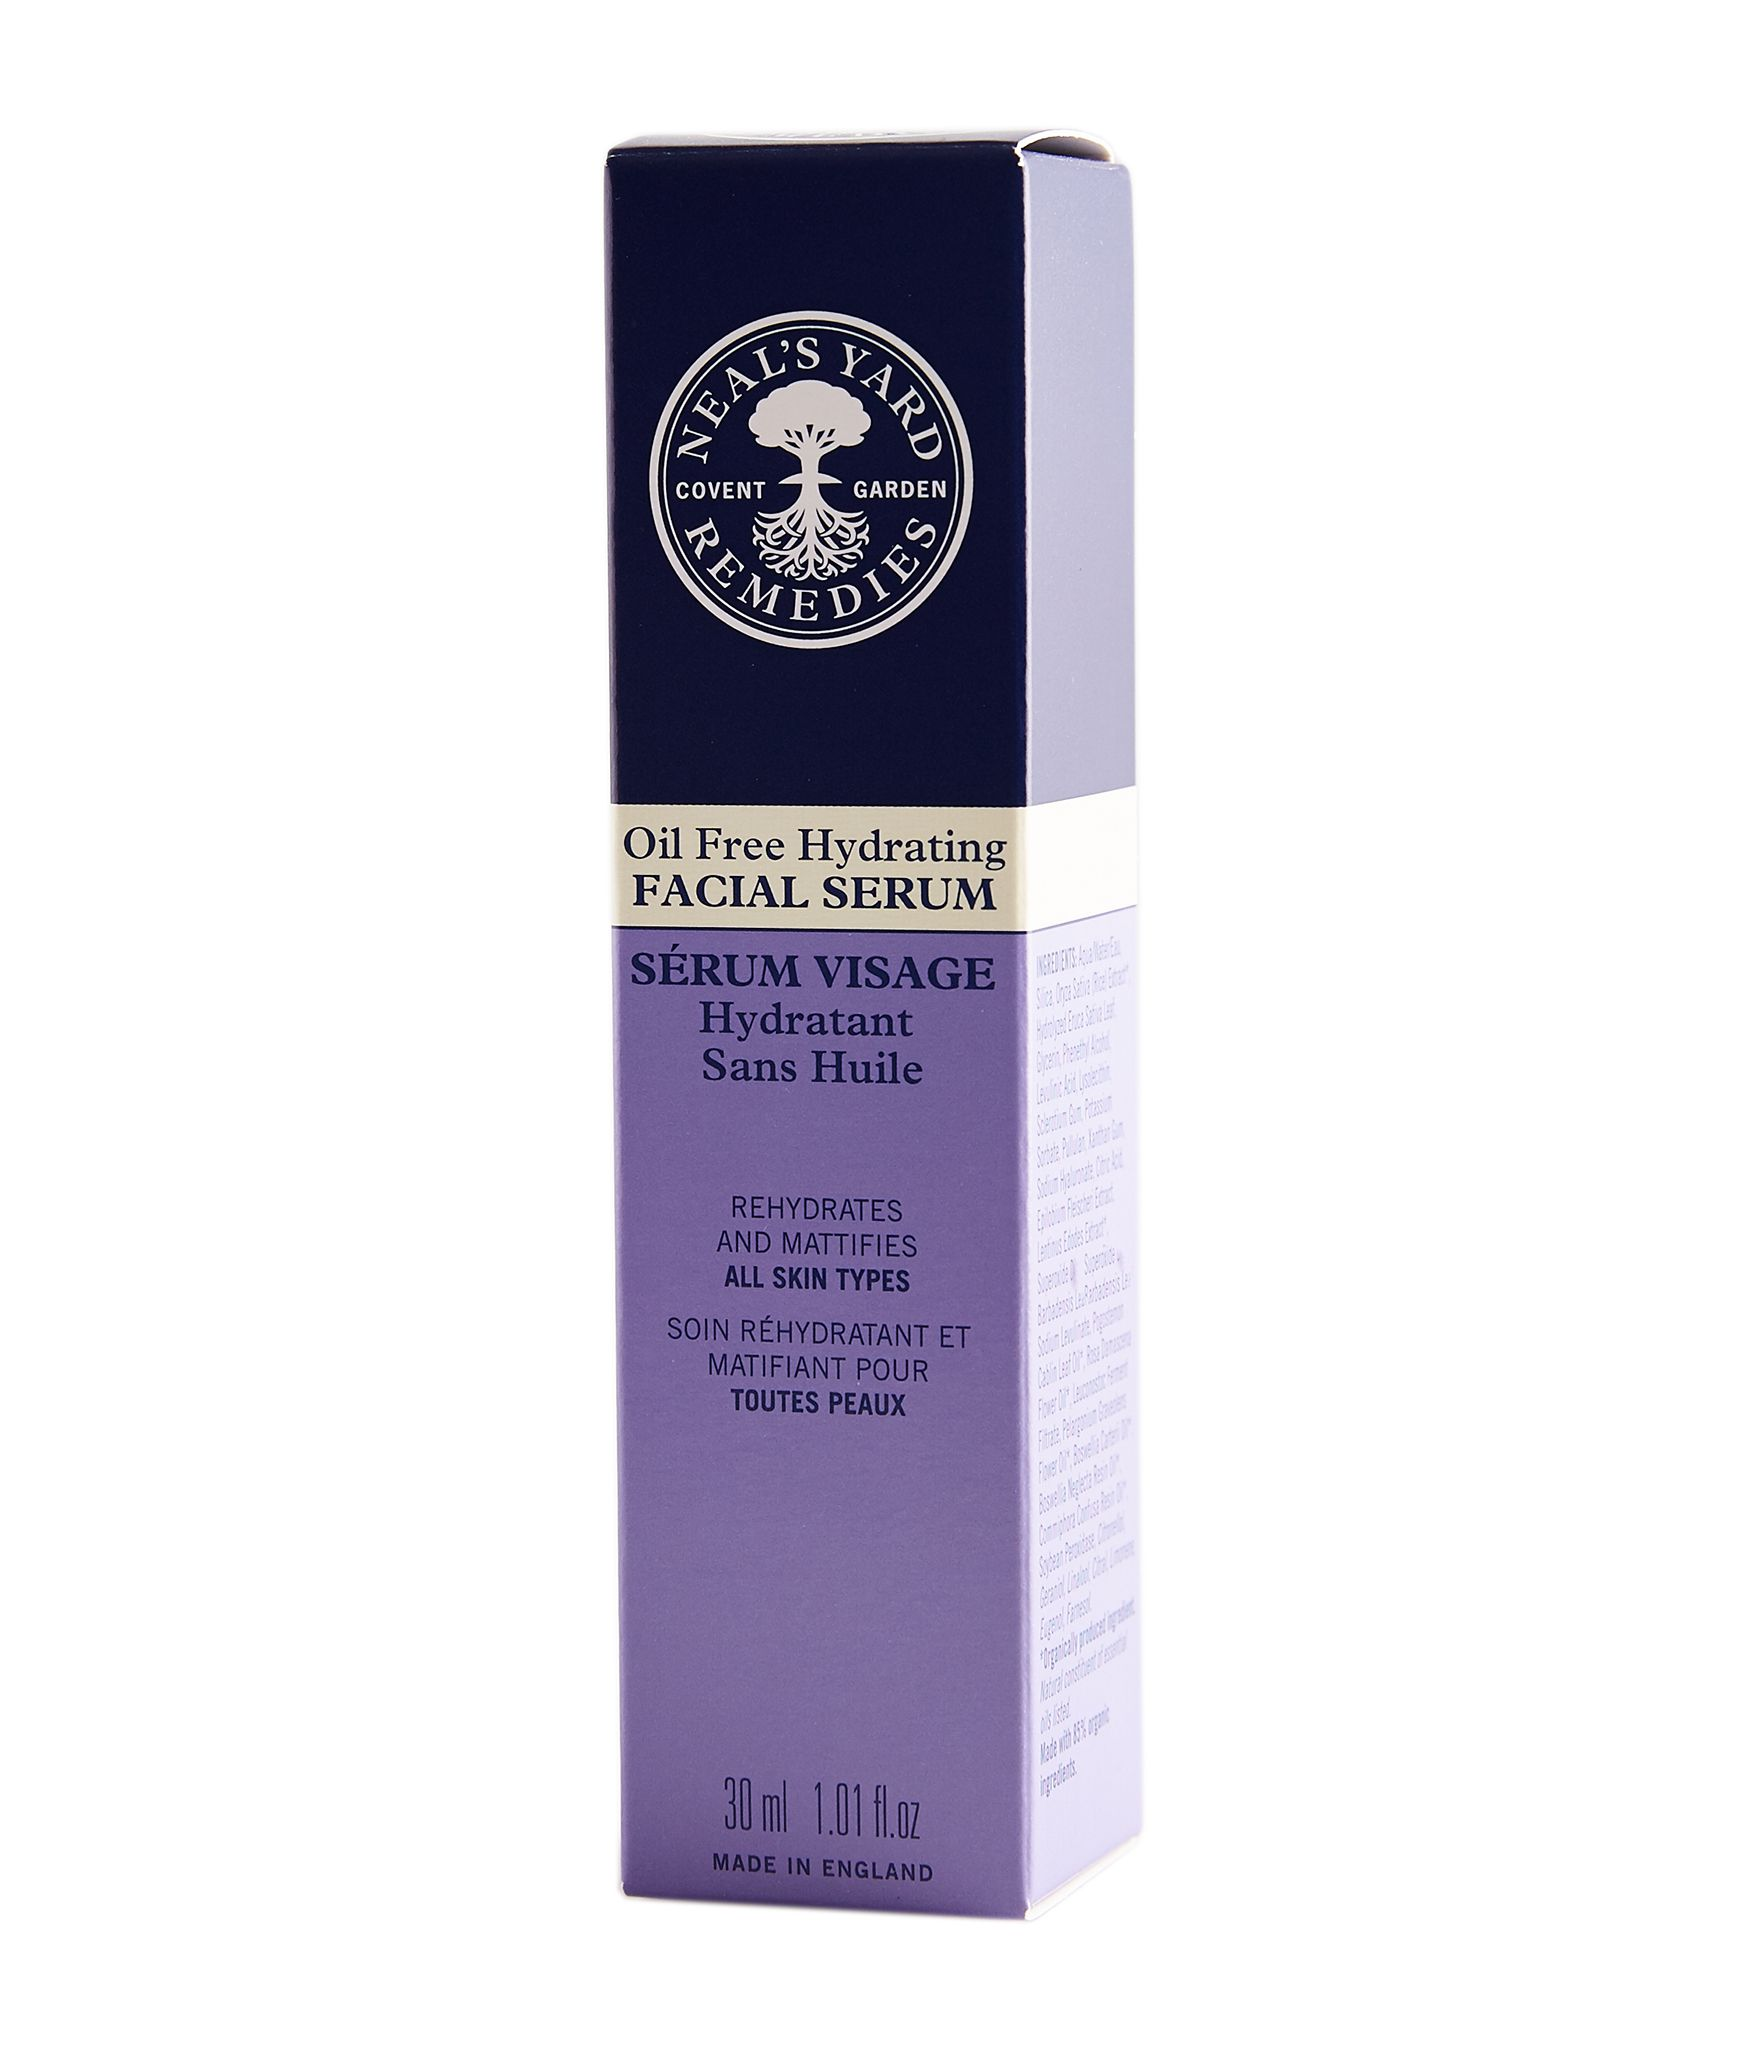 �ล�าร���หารู��า�สำหรั� Neal's Yard Remedies Oil Free Hydrating Serum 30 ml.